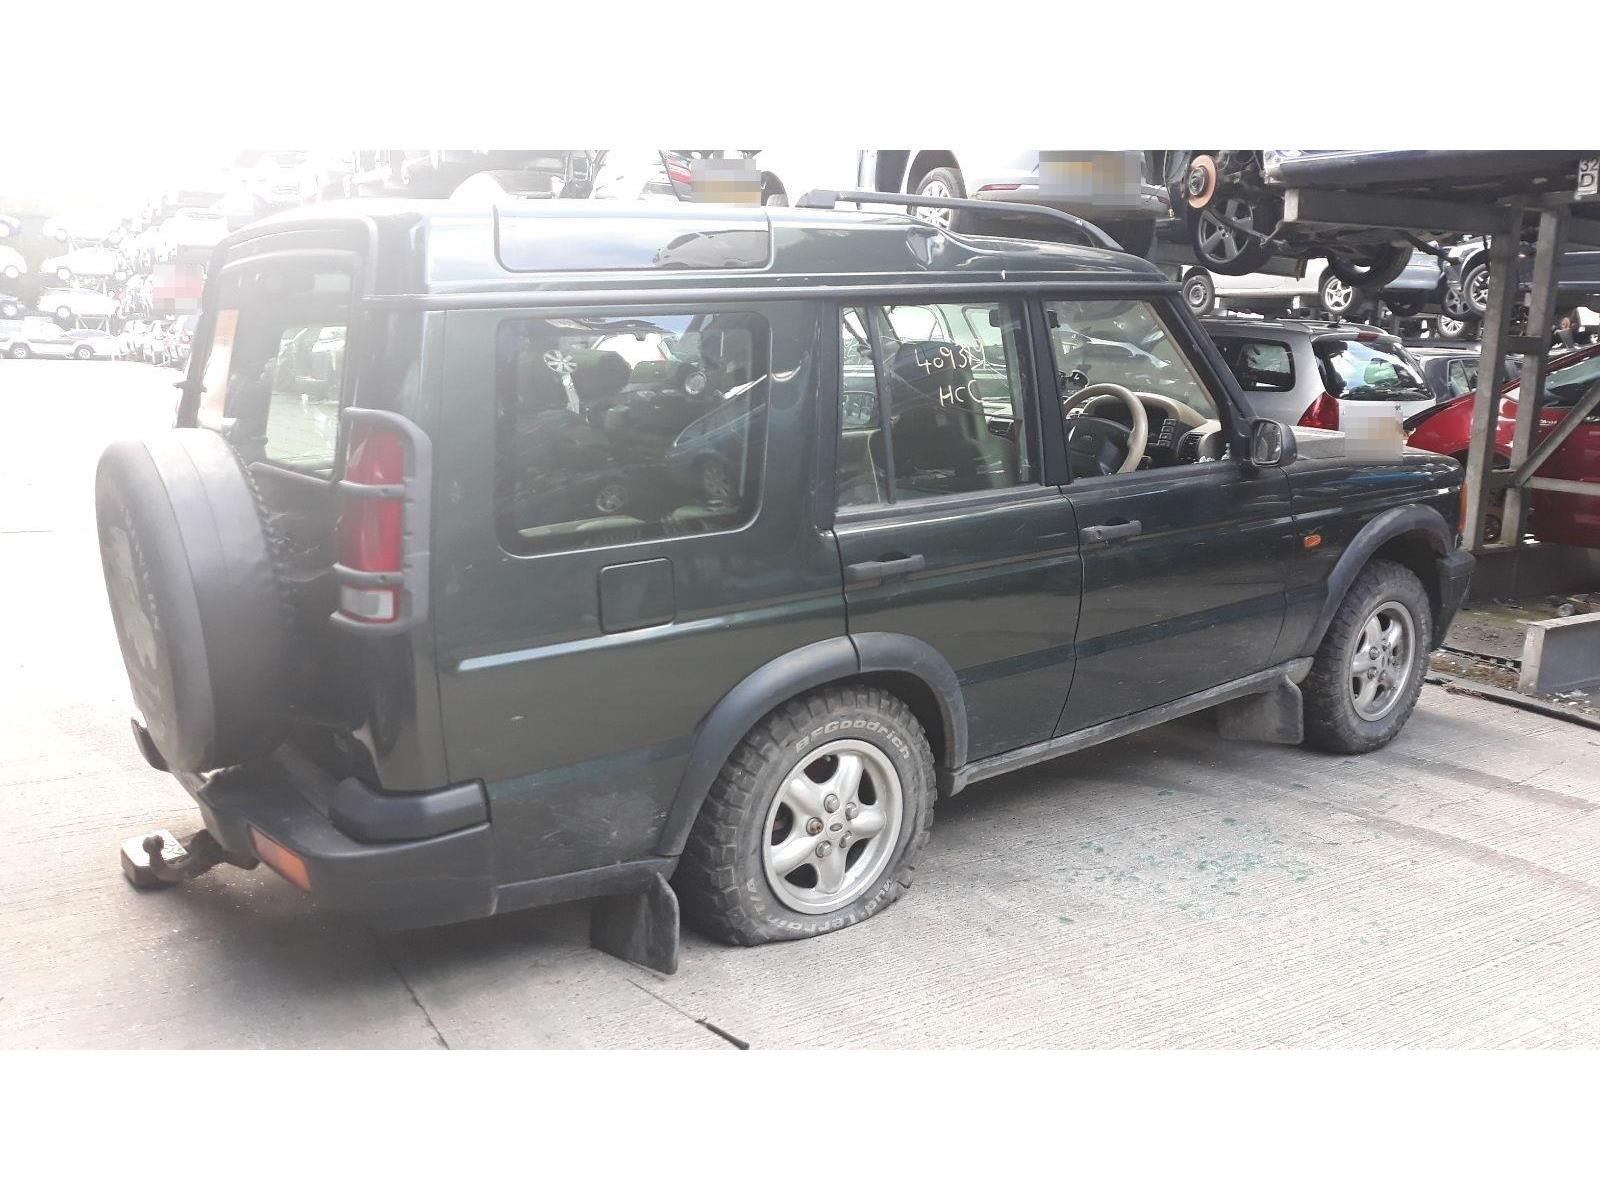 Land Rover Discovery 1998 To 2003 Gs 5 Seat Door 4x4 Scrap Parts Salvage Car For Sale Auction Silverlake Autoparts